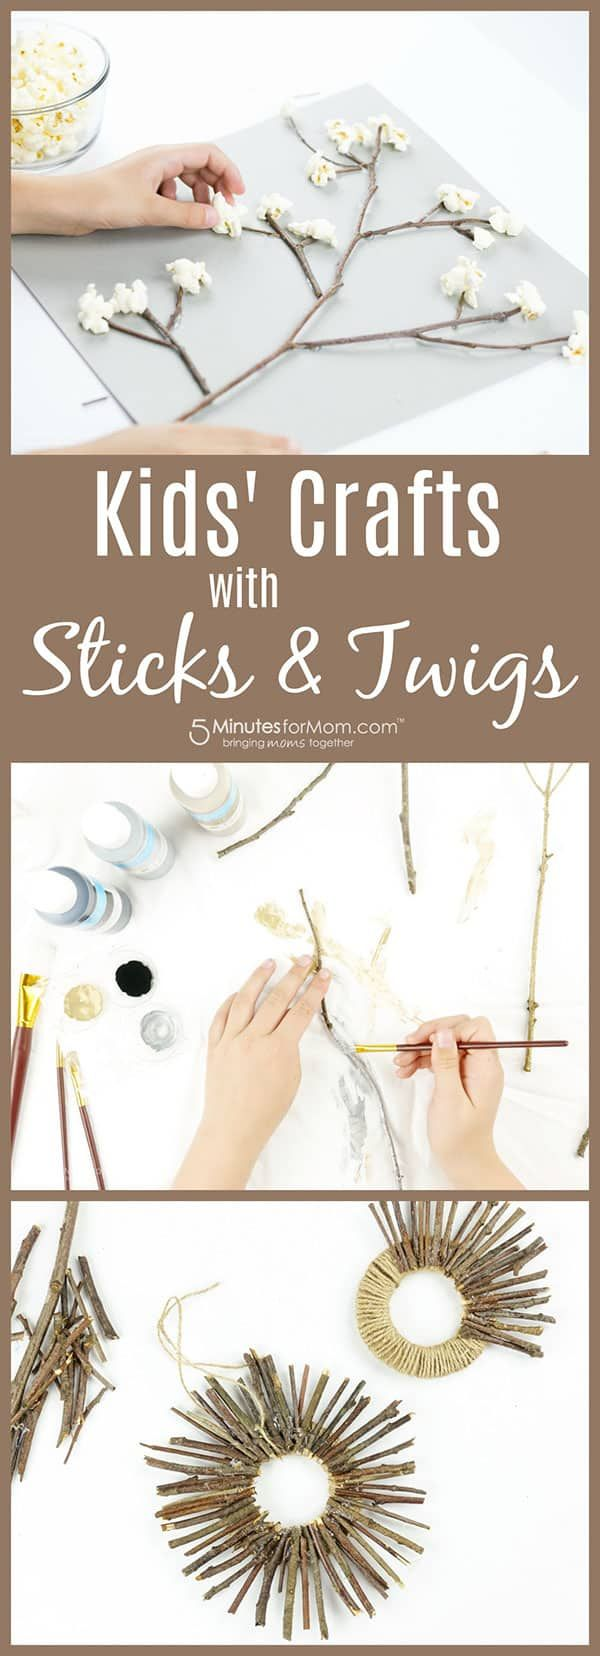 Kids' Crafts with Sticks and Twigs - 5 Minutes for Mom